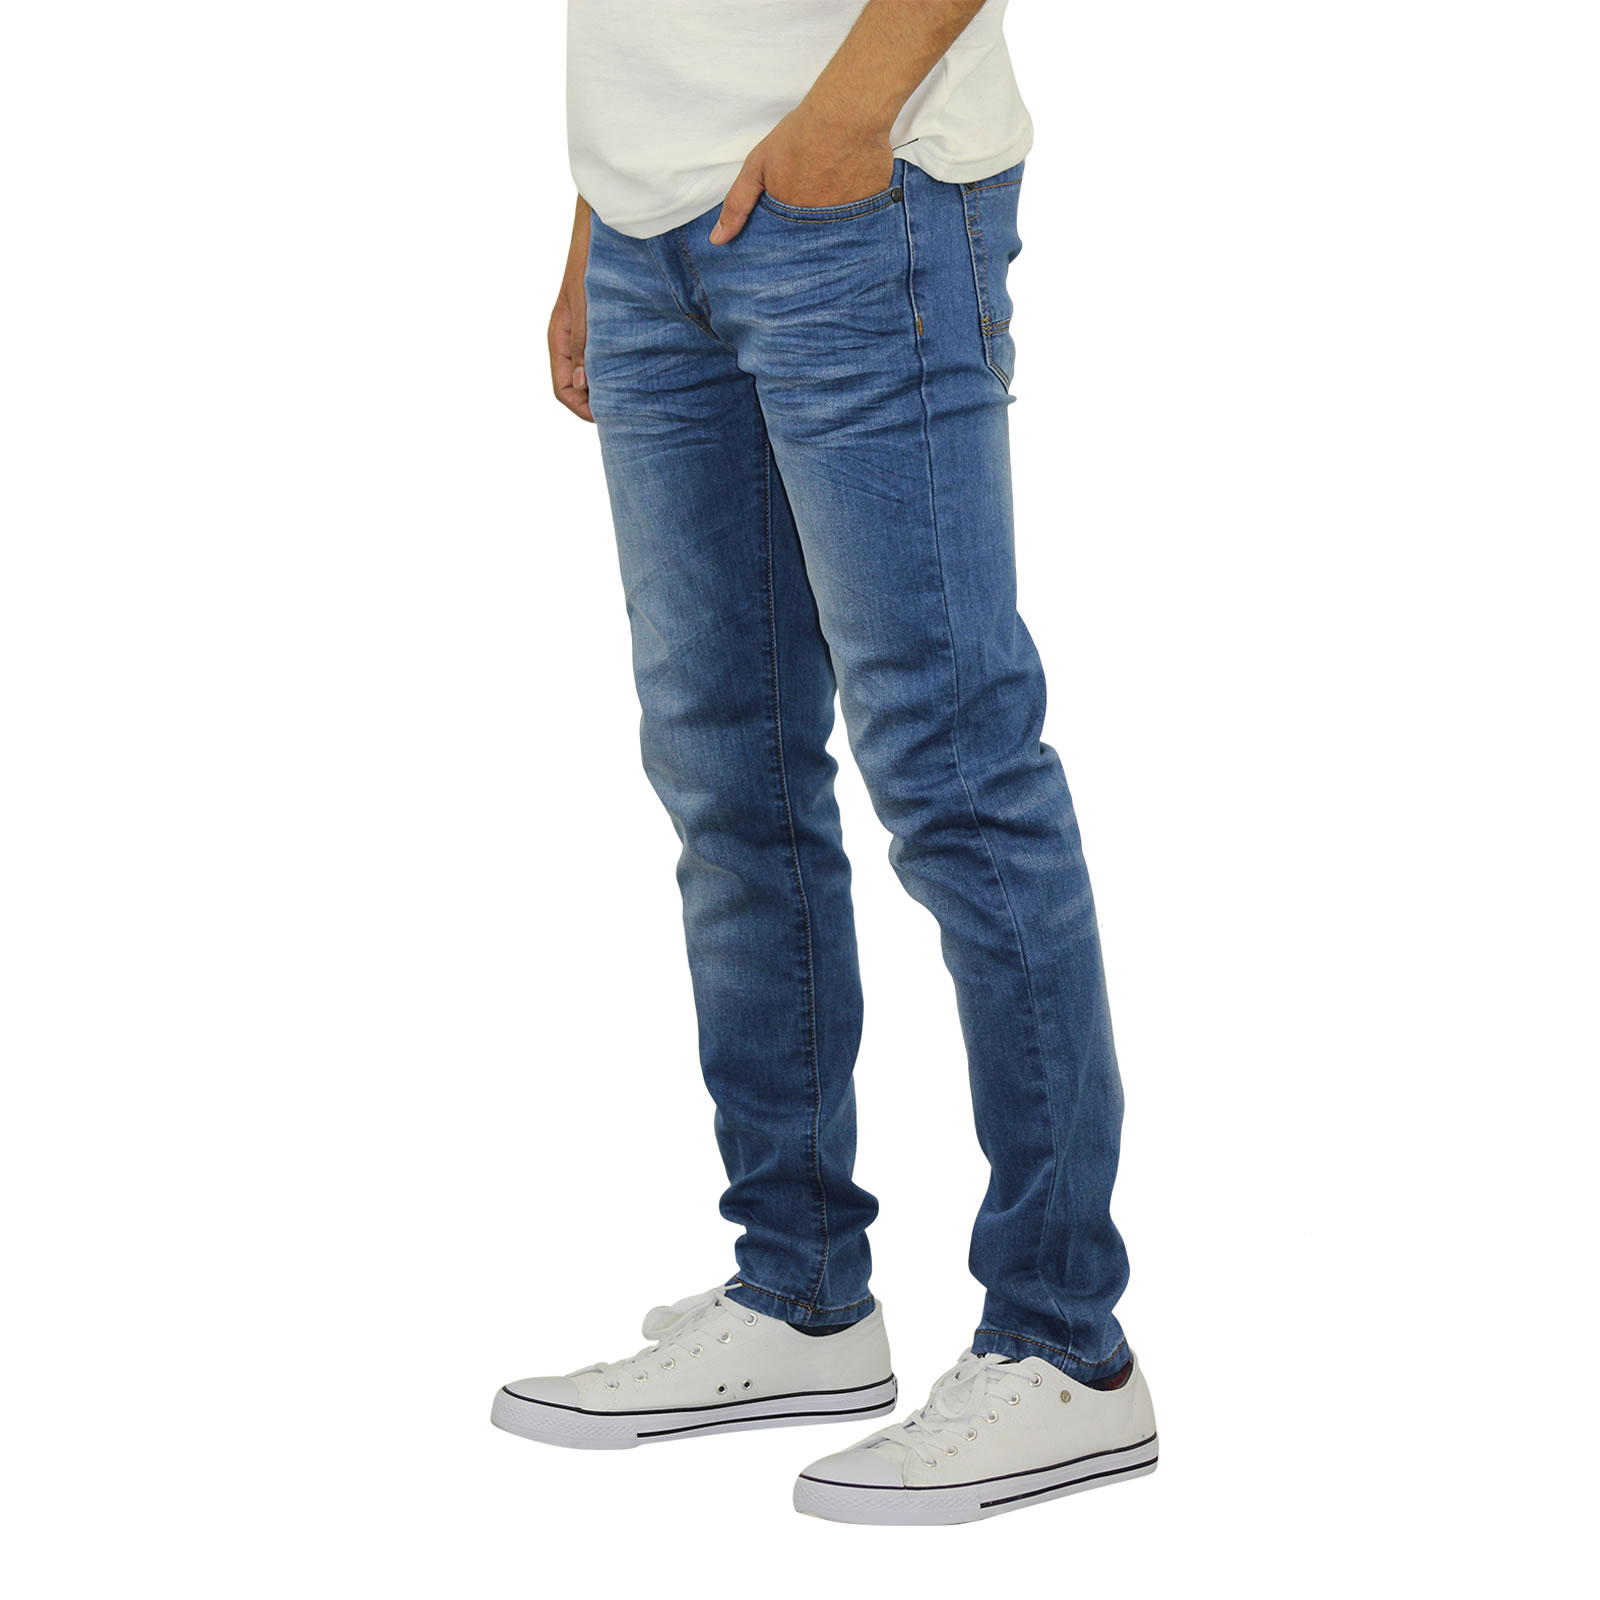 Find great deals on eBay for mens skinny leg jeans. Shop with confidence.